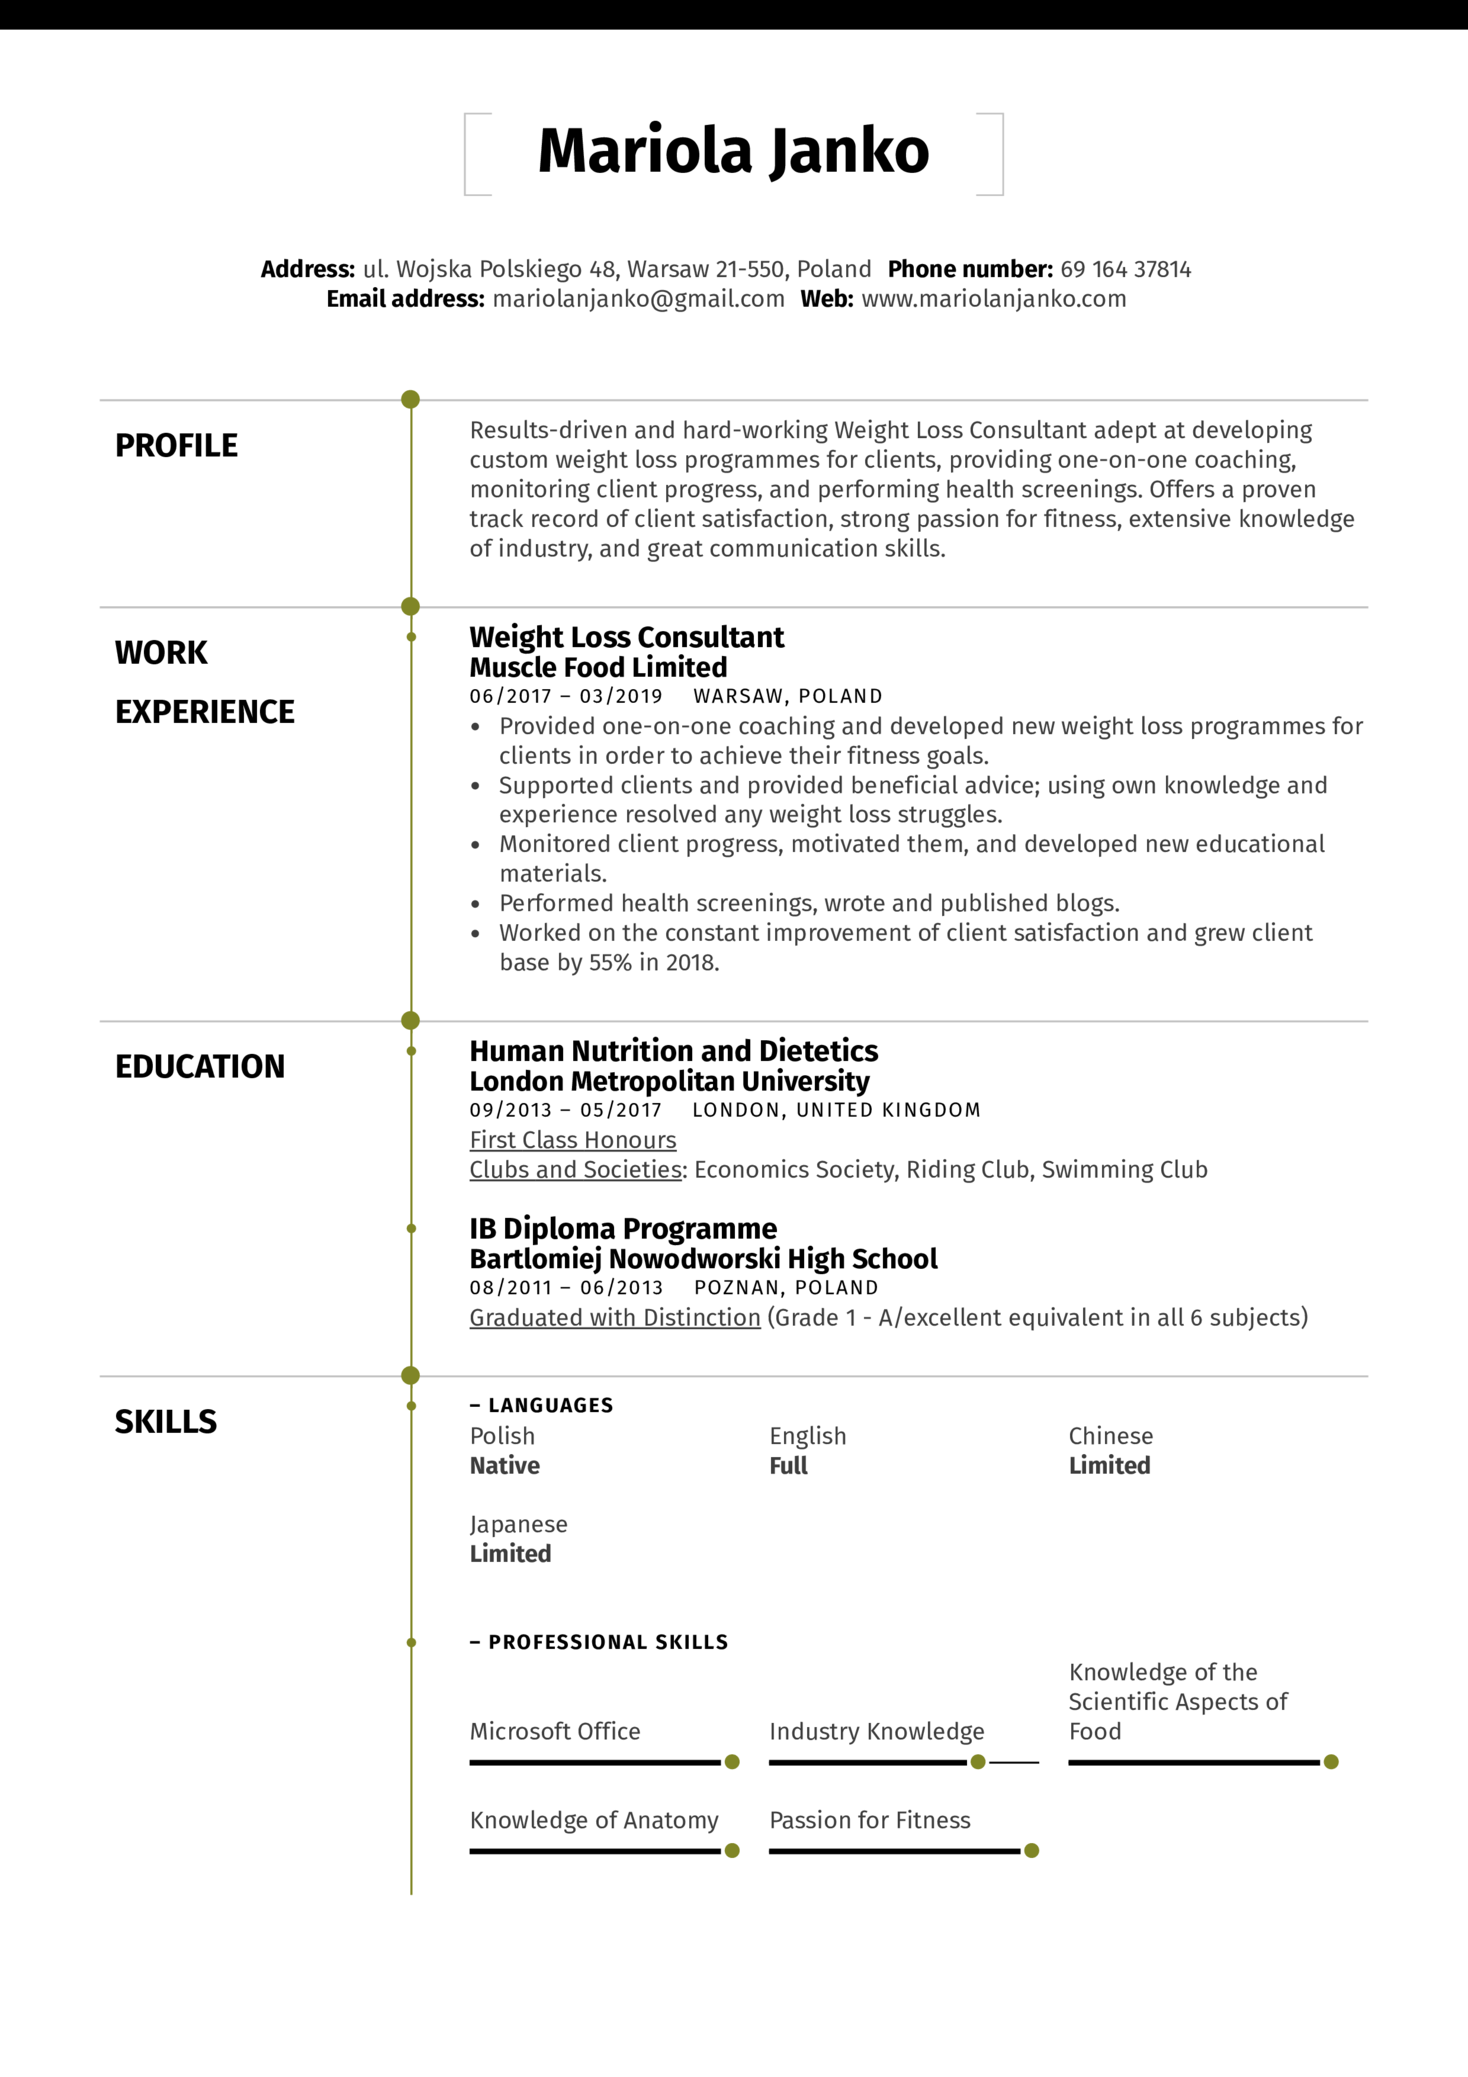 Weight Loss Consultant Resume Sample (Part 1)